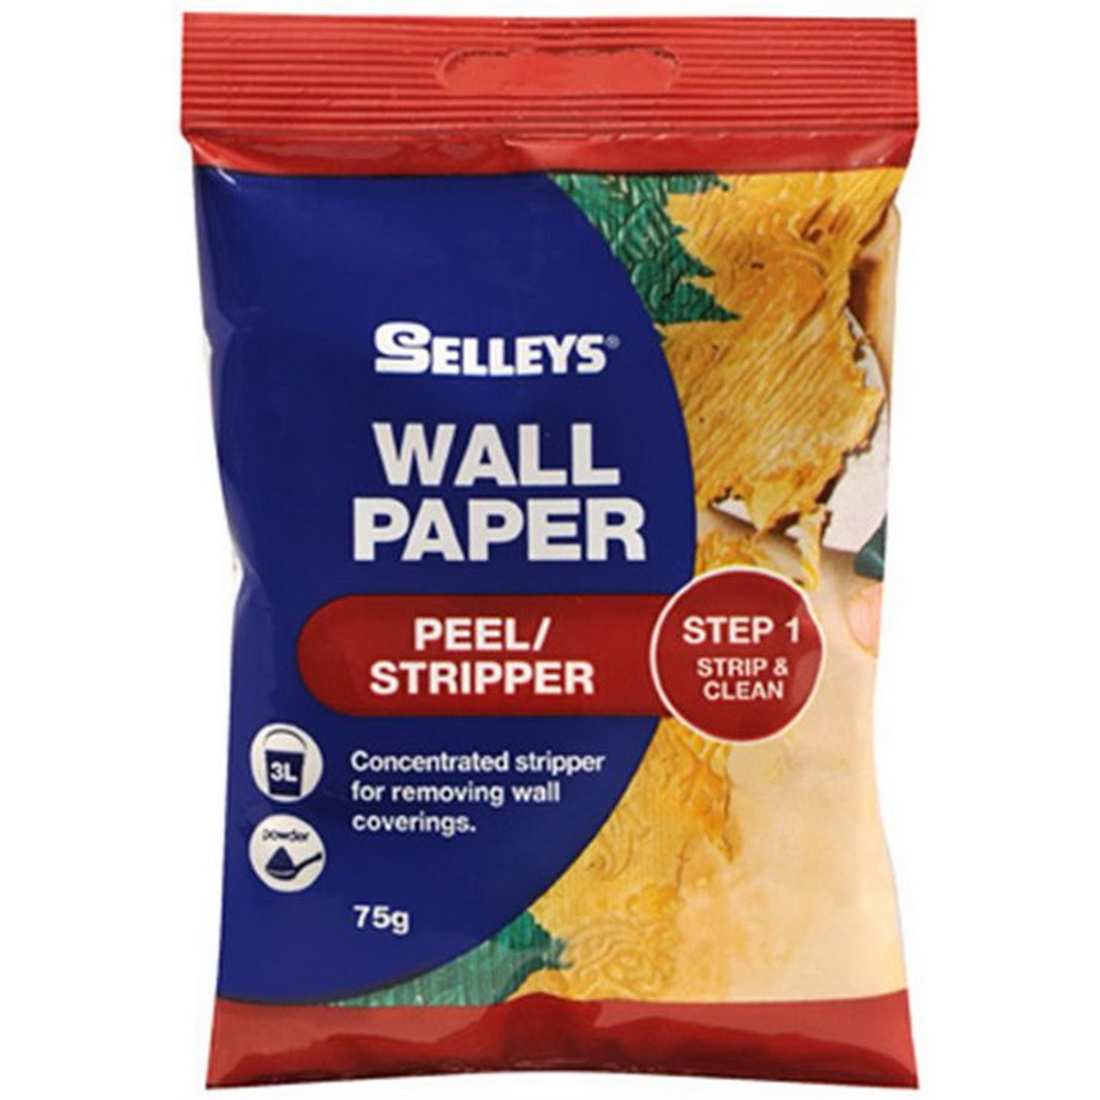 75g Peel/Stripper Weight Wall Paper Paste